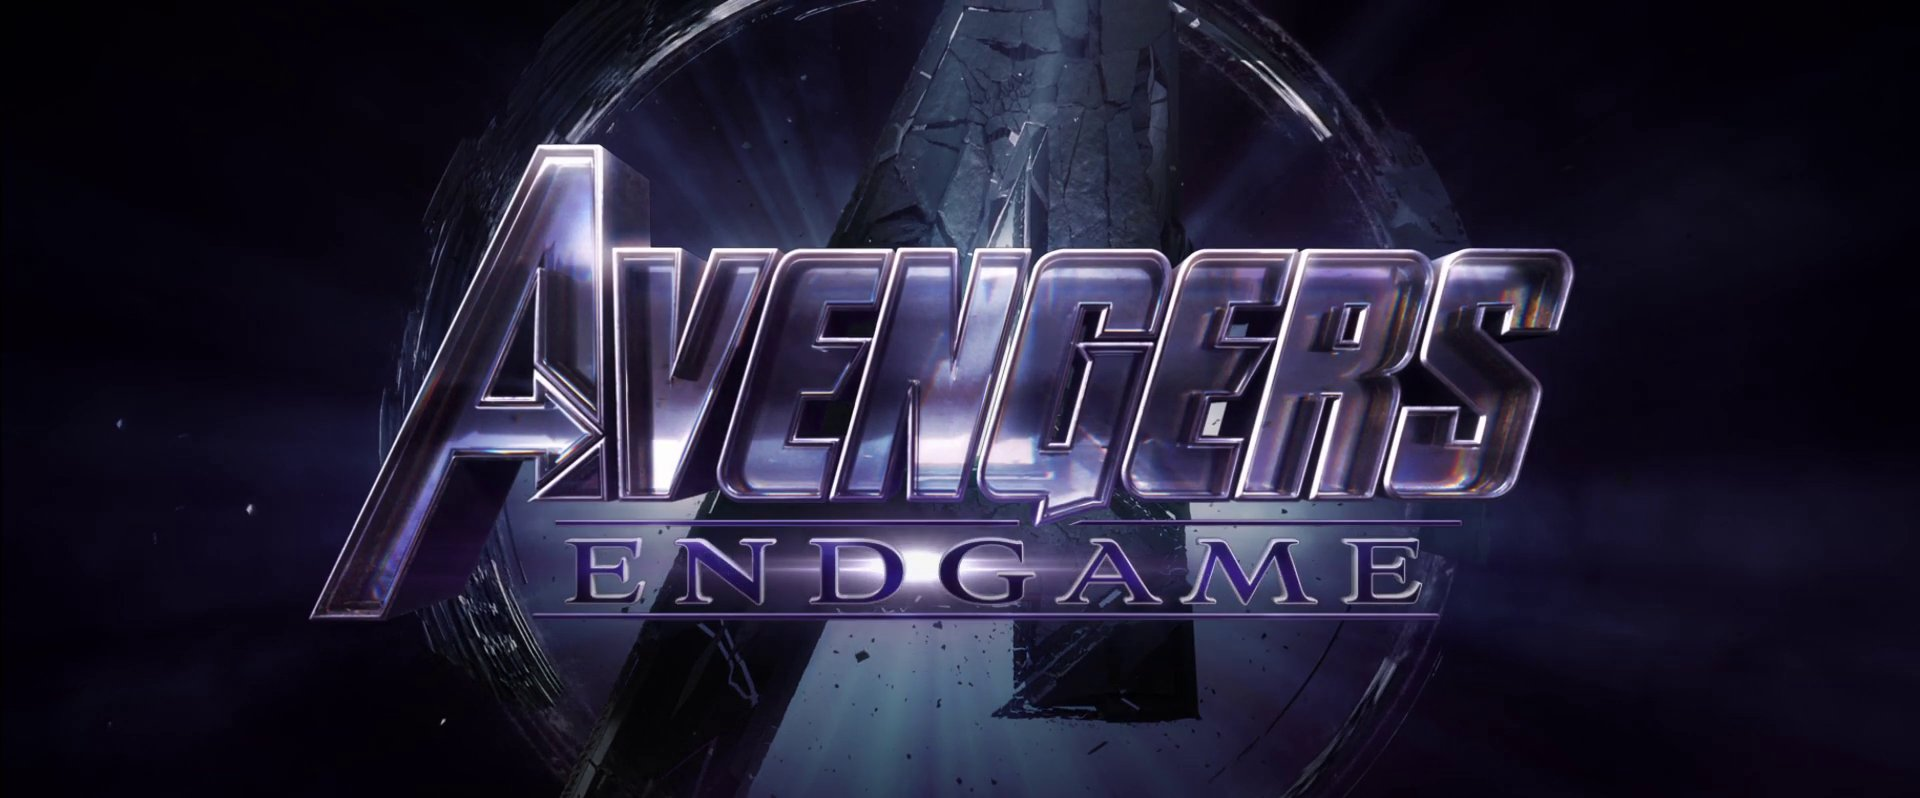 Avengers fan theory reckons Endgame isn't the real title